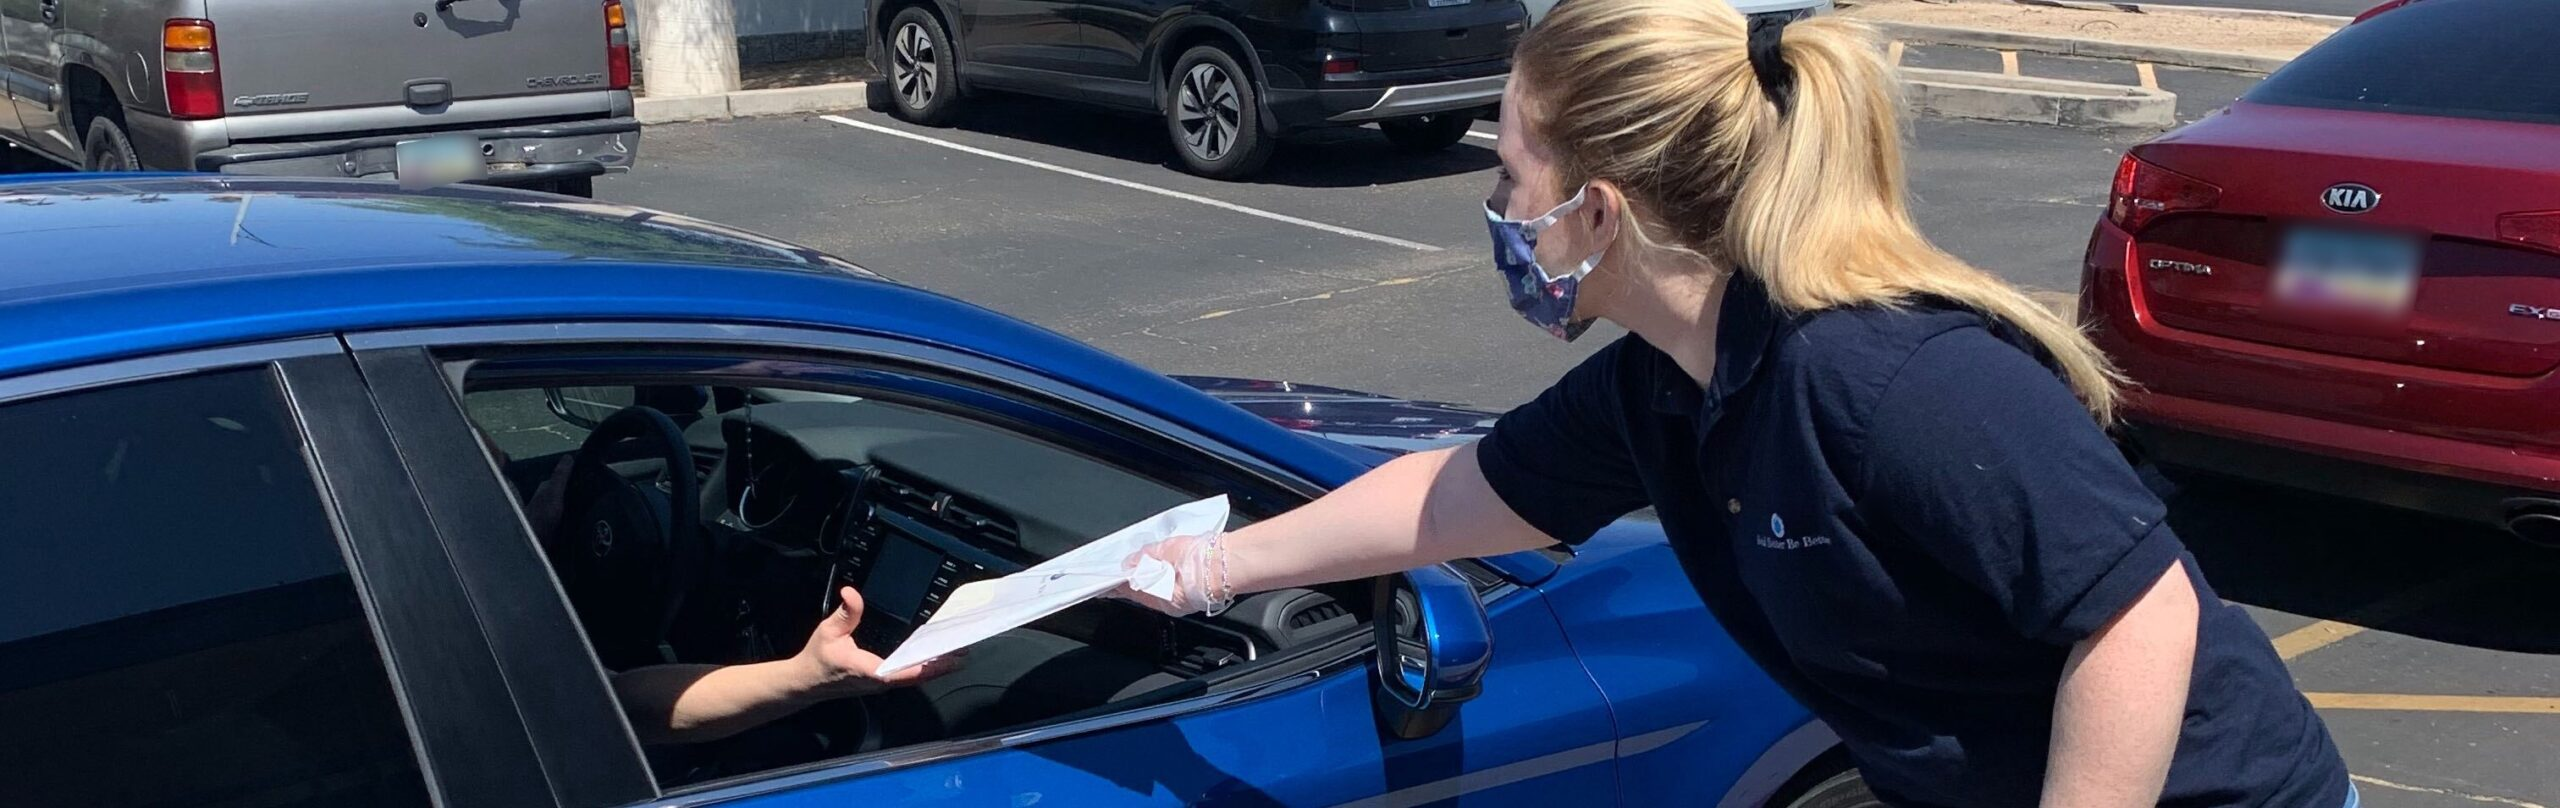 a Program Coach hands someone in a car a literacy kit